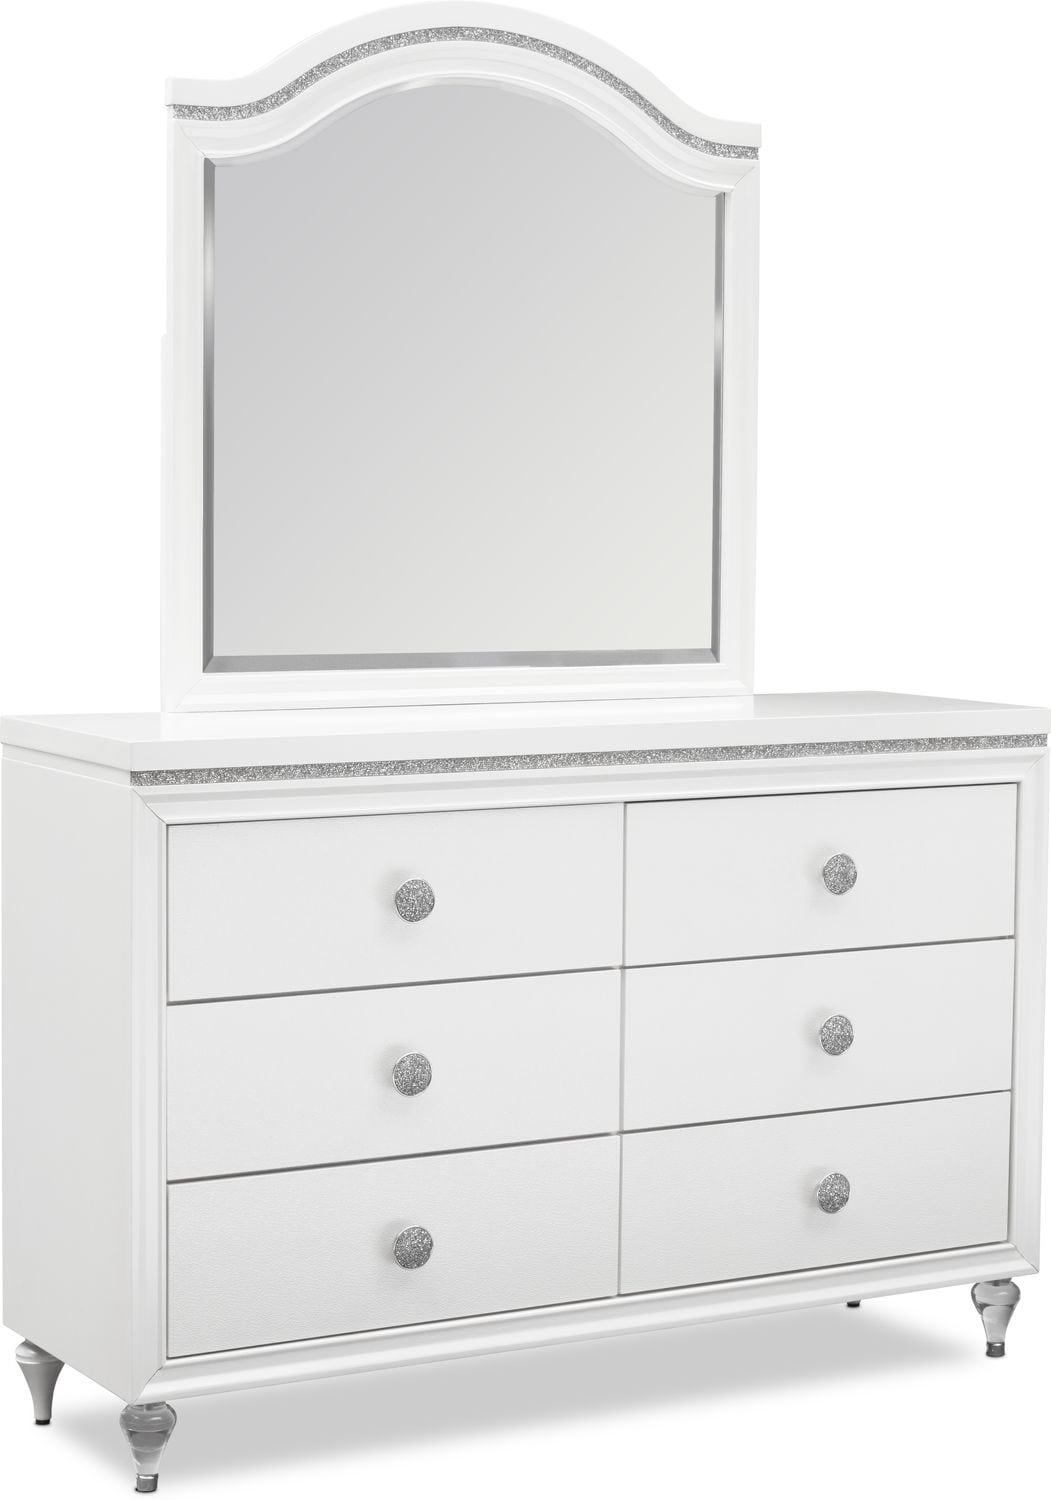 Kids Furniture - Sophia Dresser and Mirror